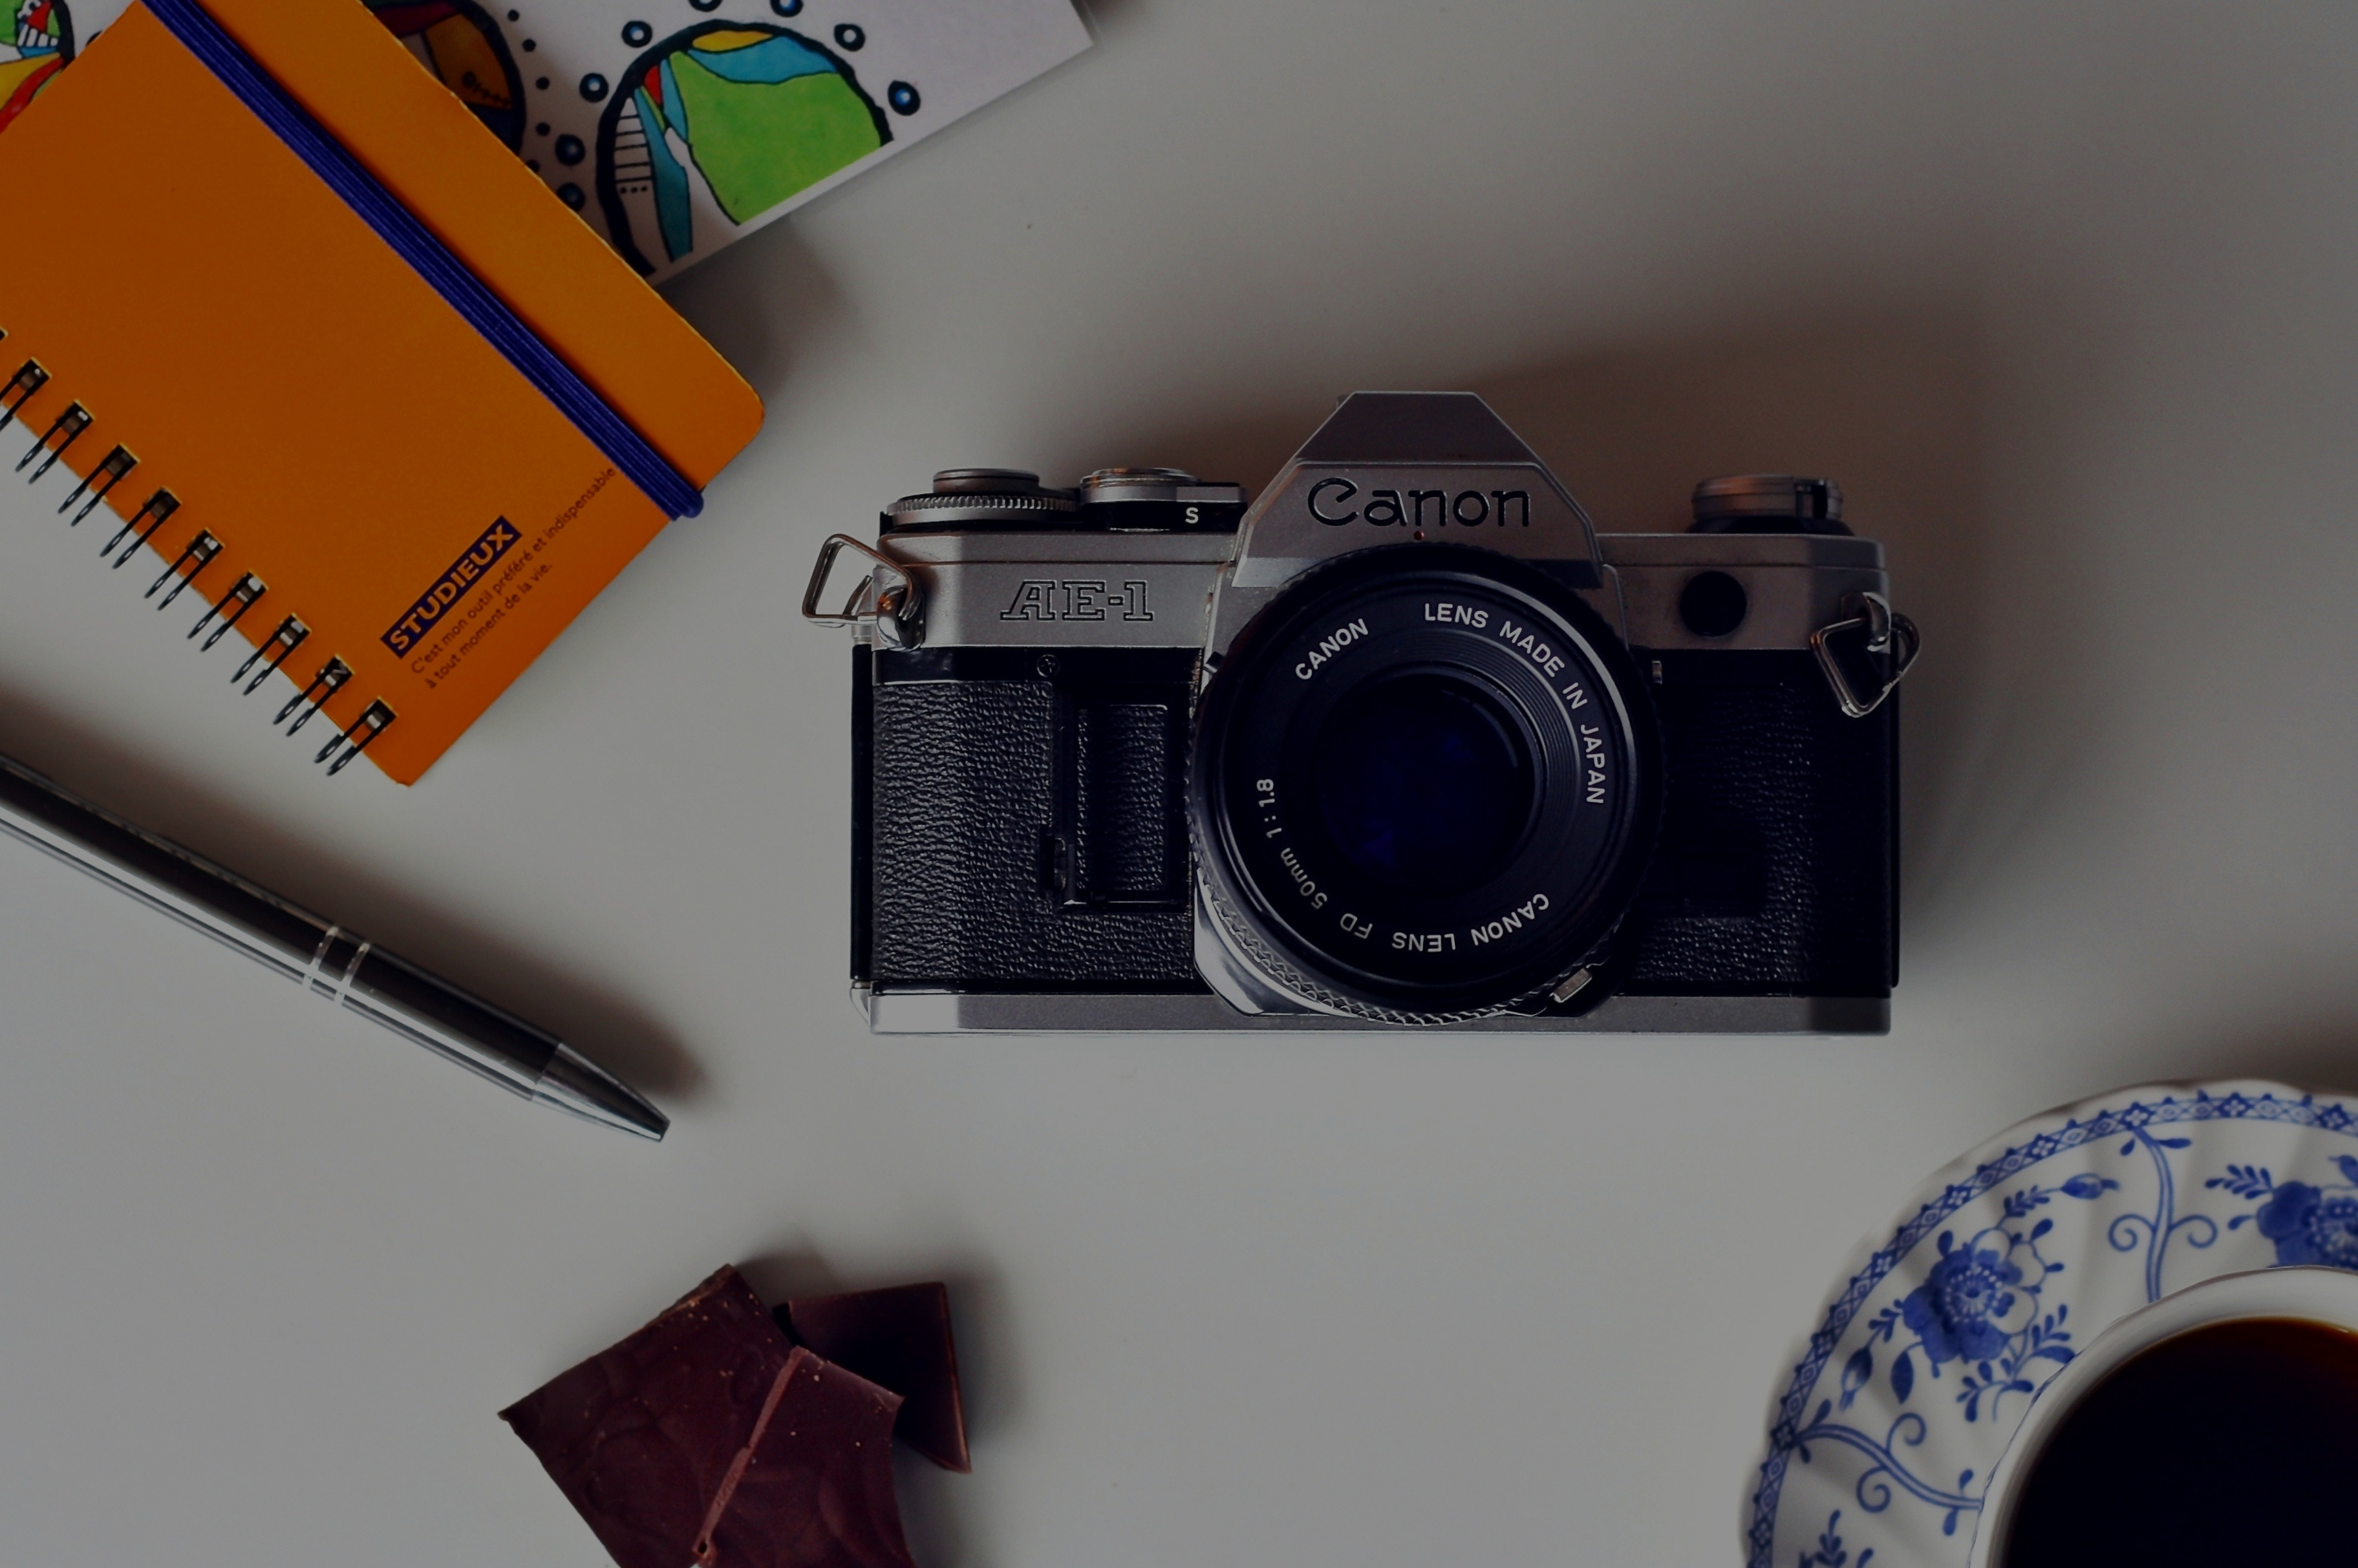 How Do You Use a DSLR Camera With Practice